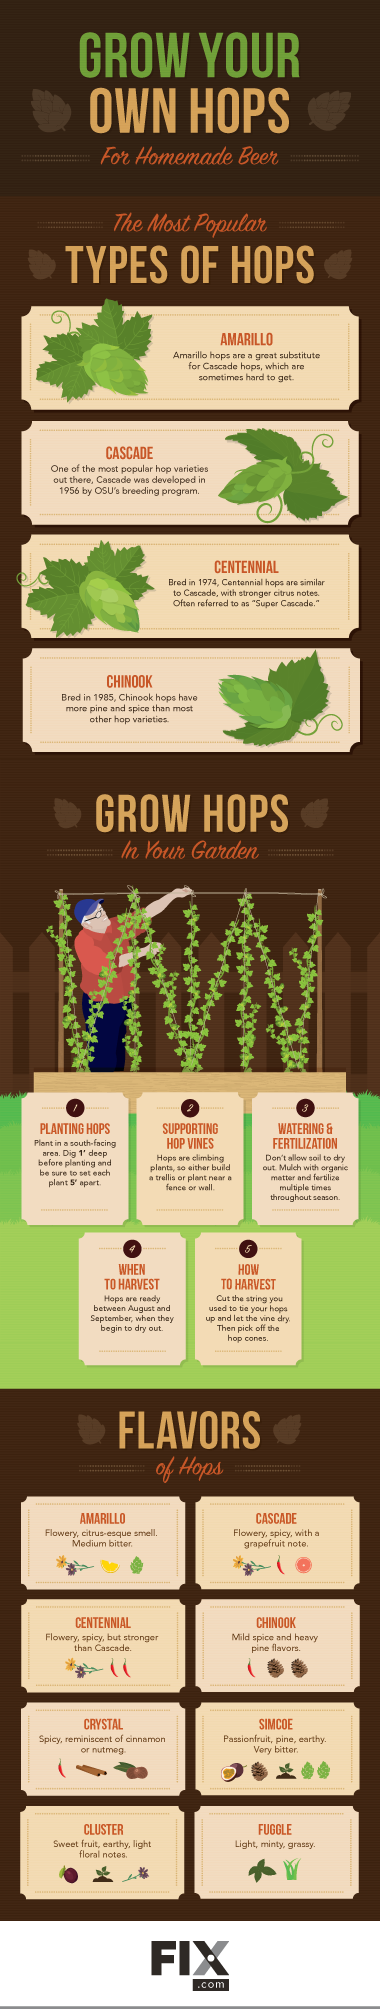 Grow Your Own Hops For Homemade Beer #infographic